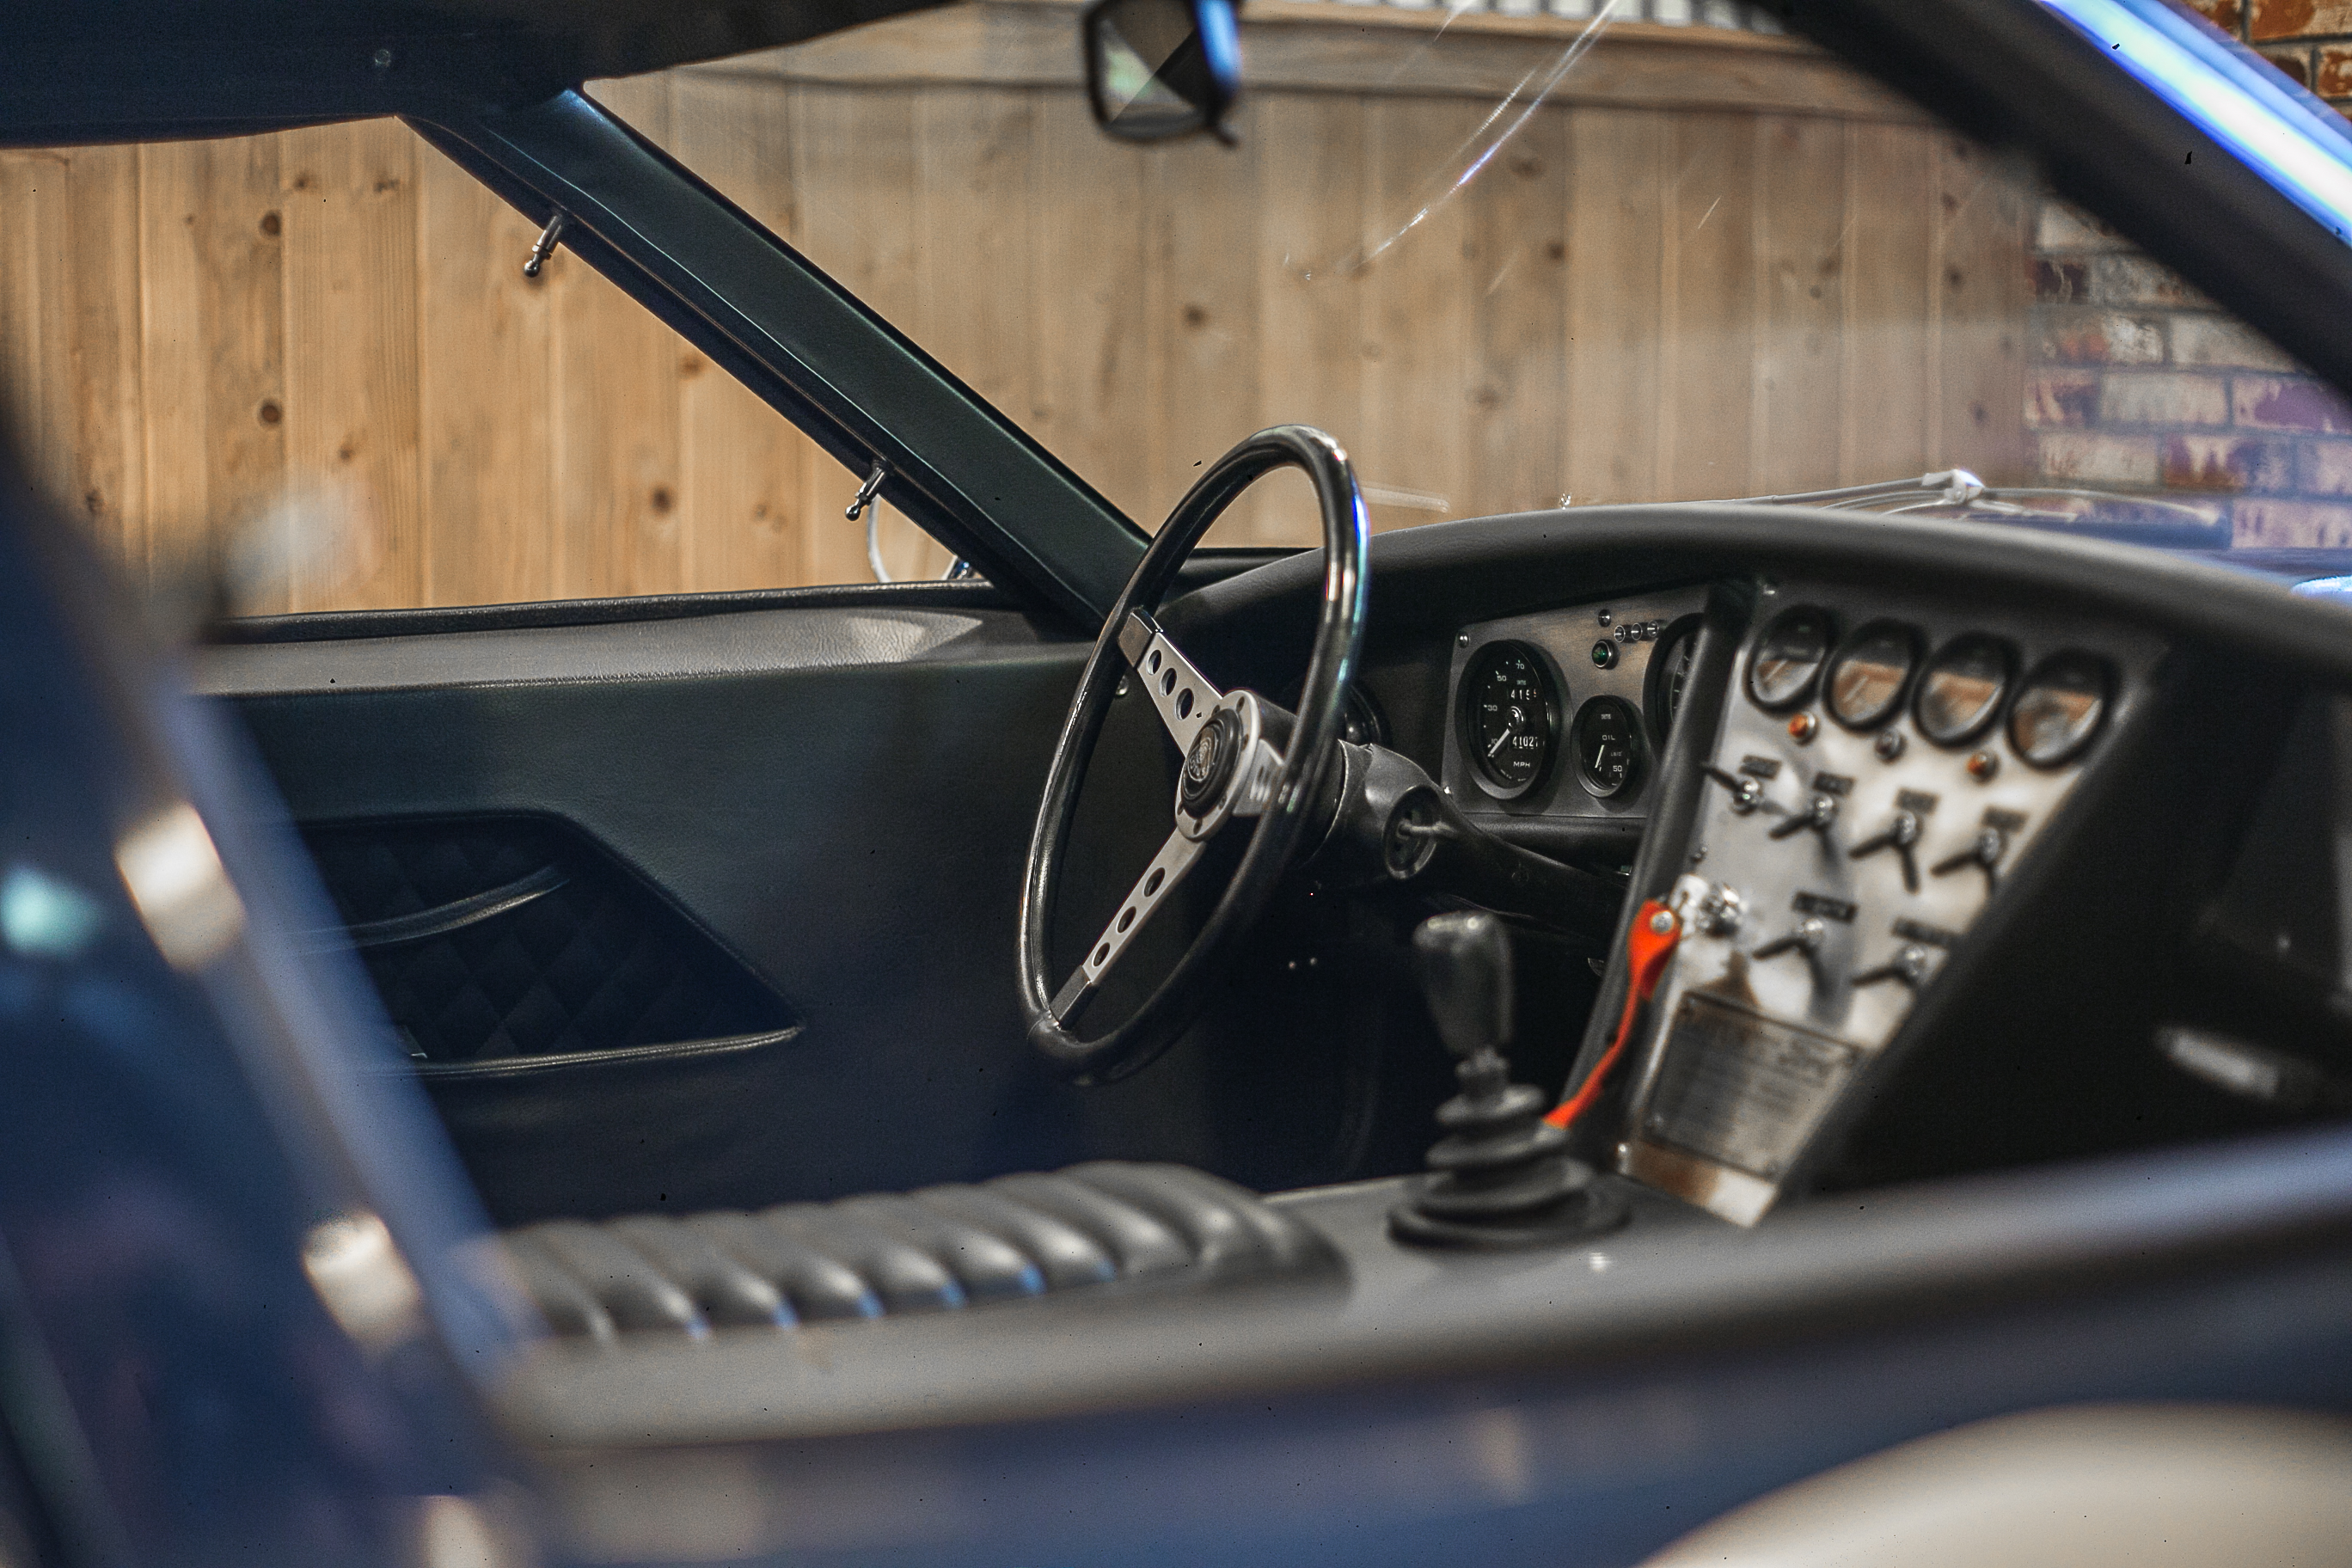 The interior of a 1970 Lotus Europa at the Caccavo garage in Thousand Oaks, California.